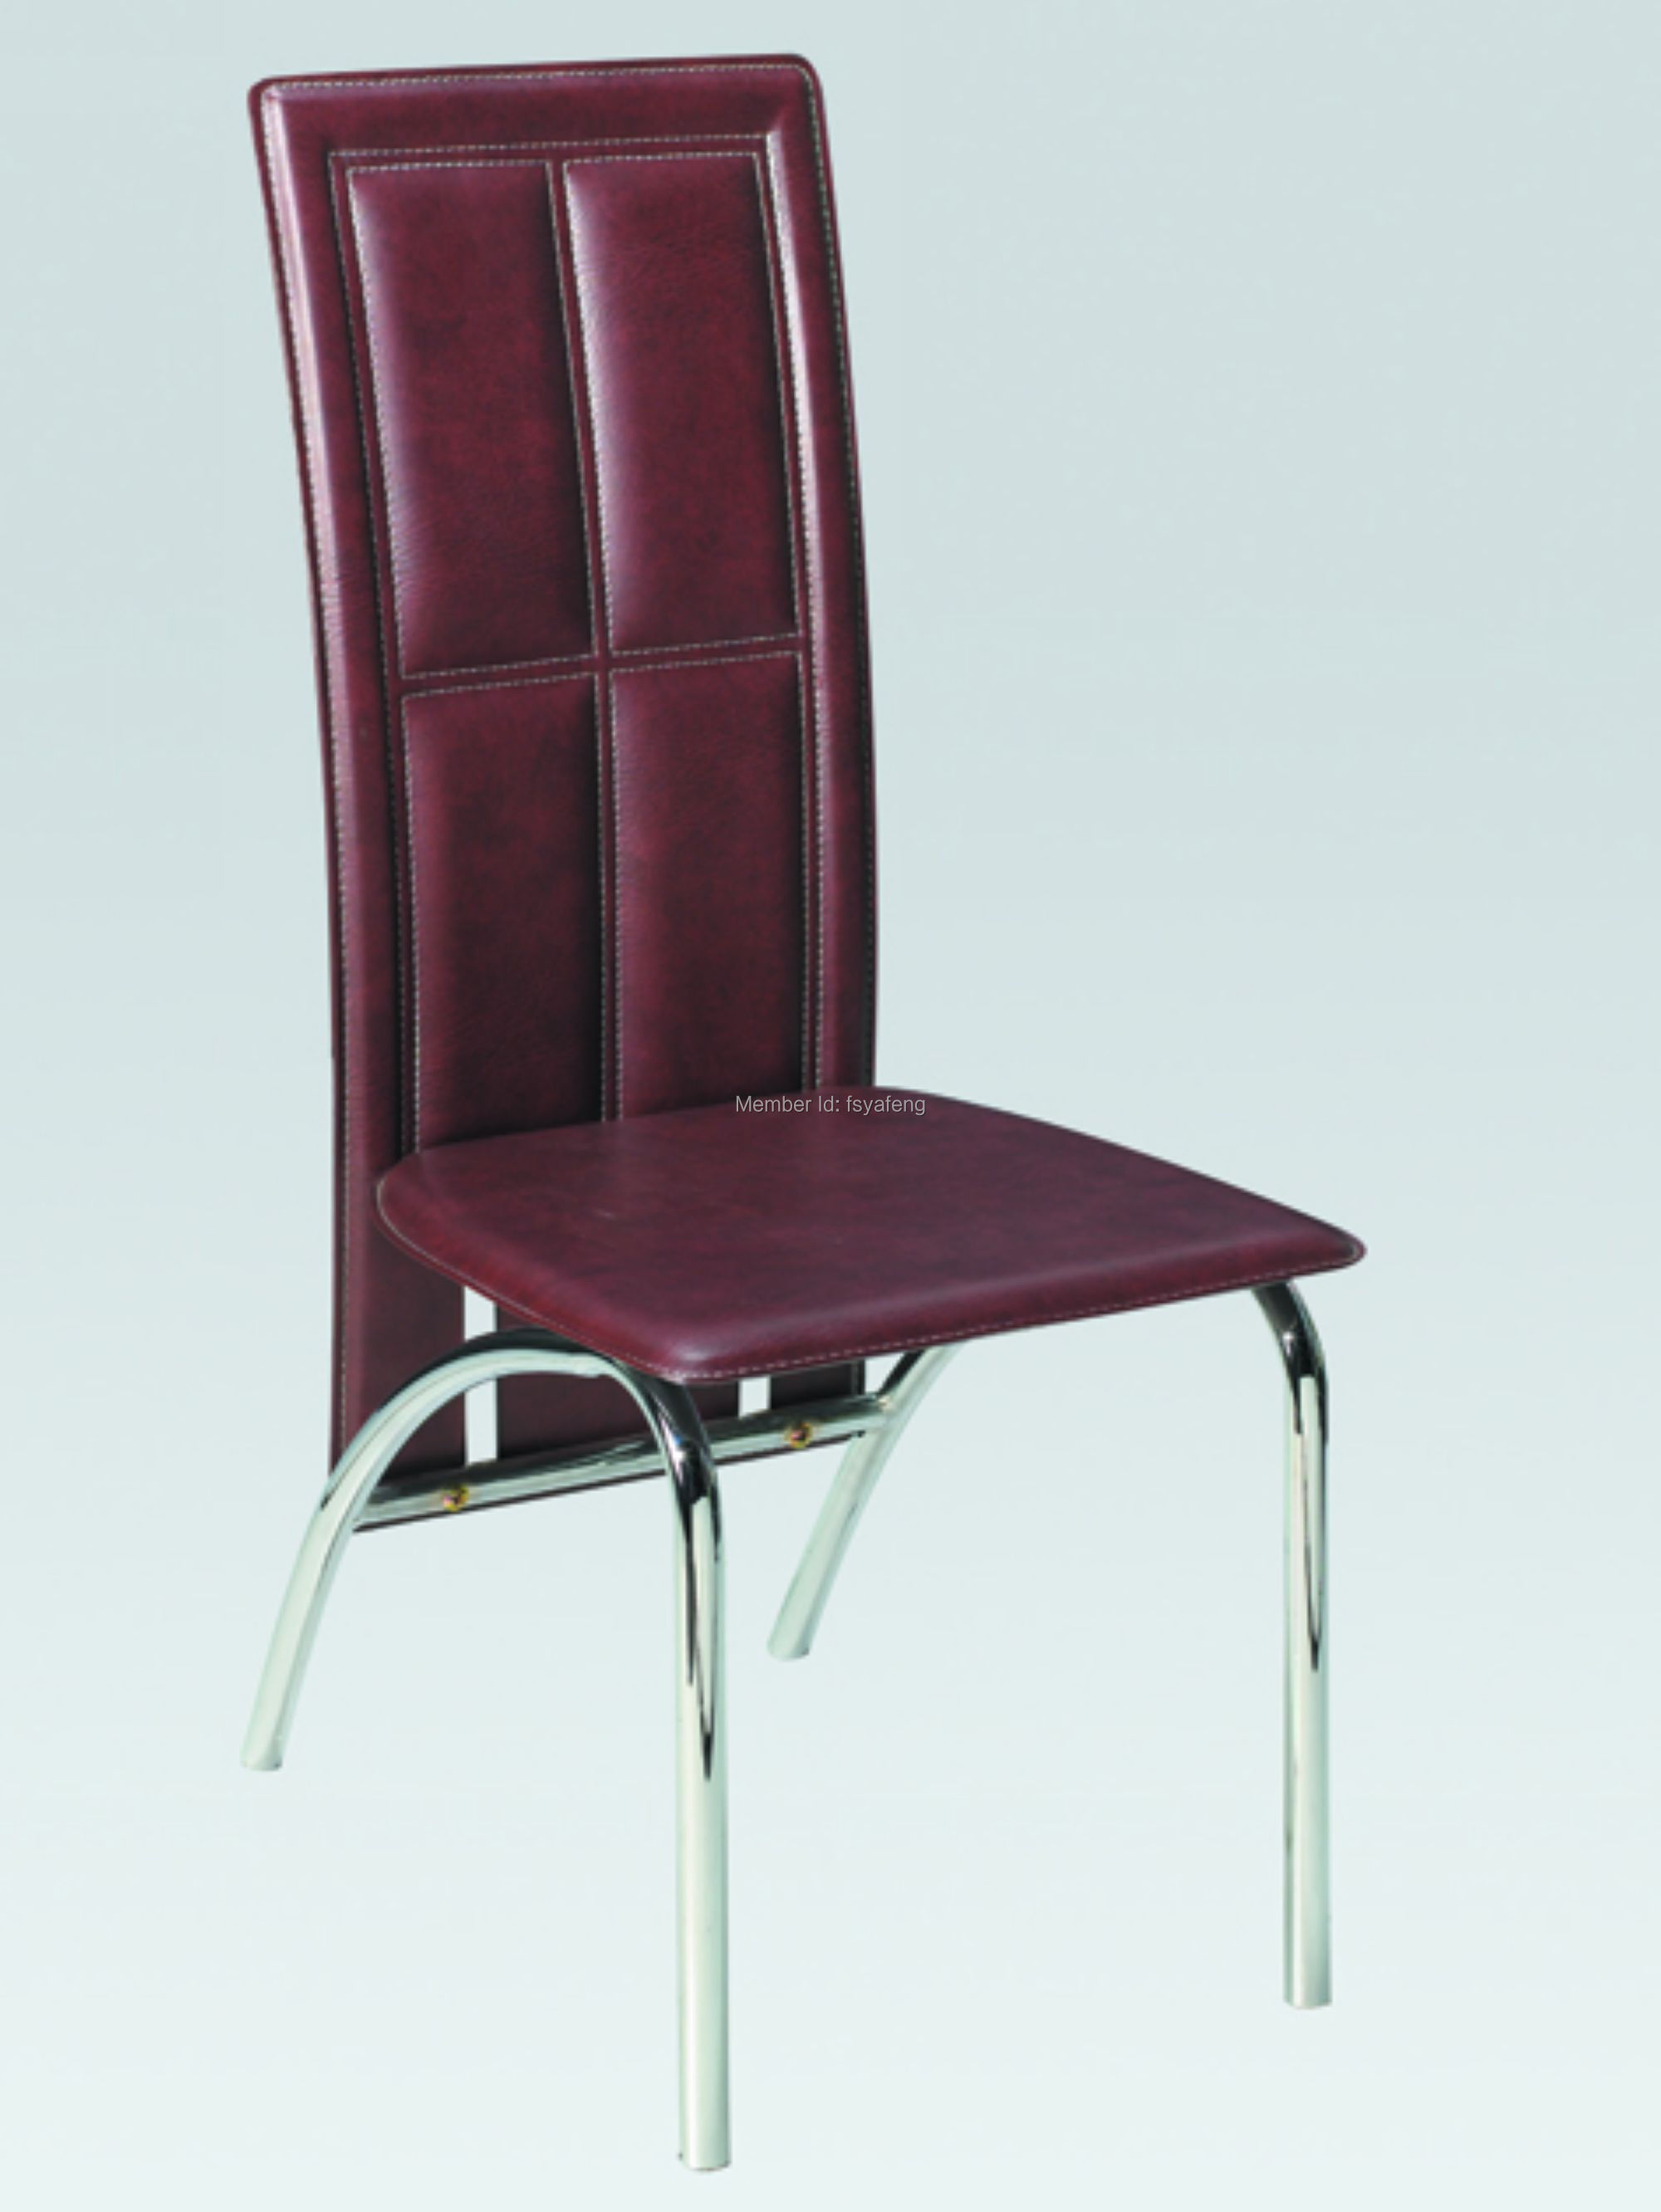 Dining chair leather chair metal chair living room for Metal living room chairs